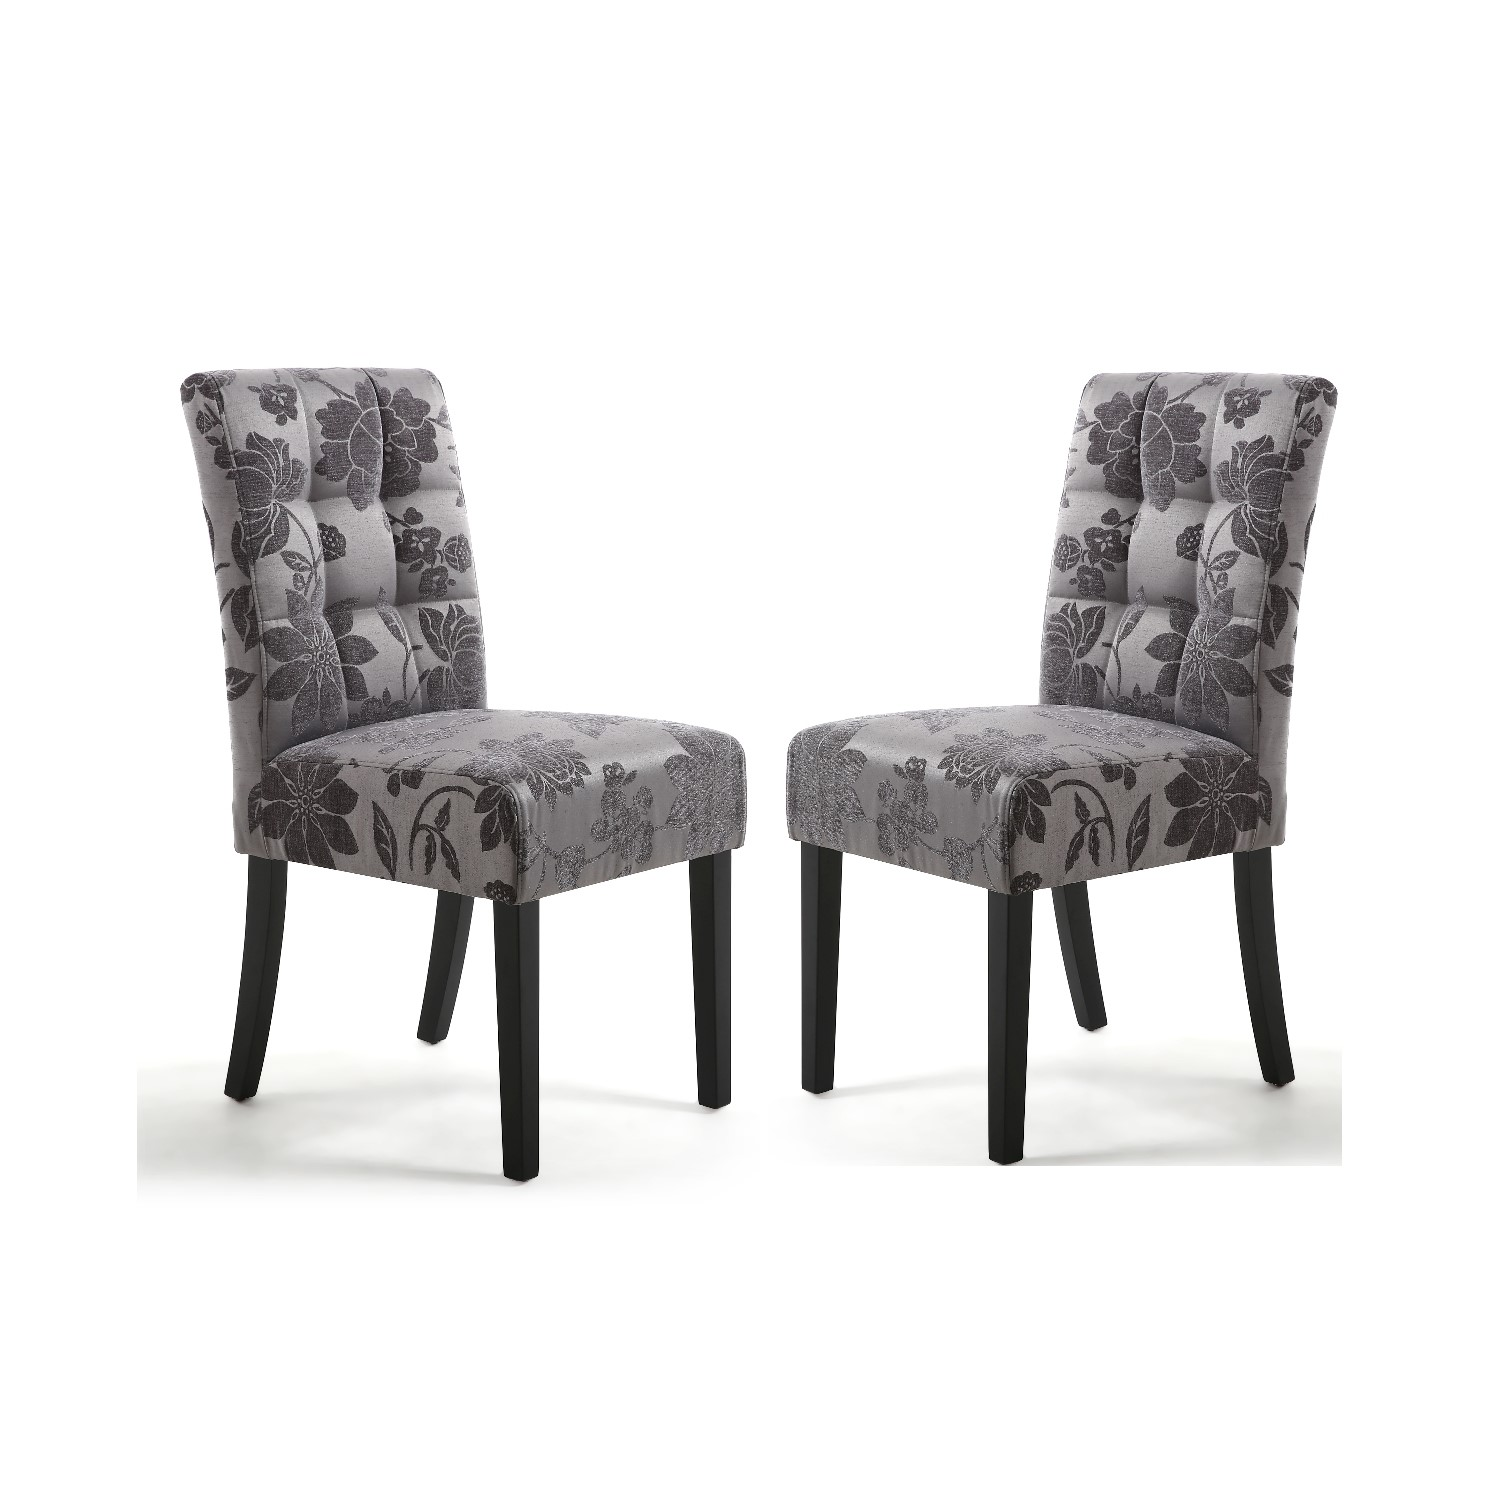 shankar moseley pair of waffle back jacquard grey dining chairs with rh furniture123 co uk